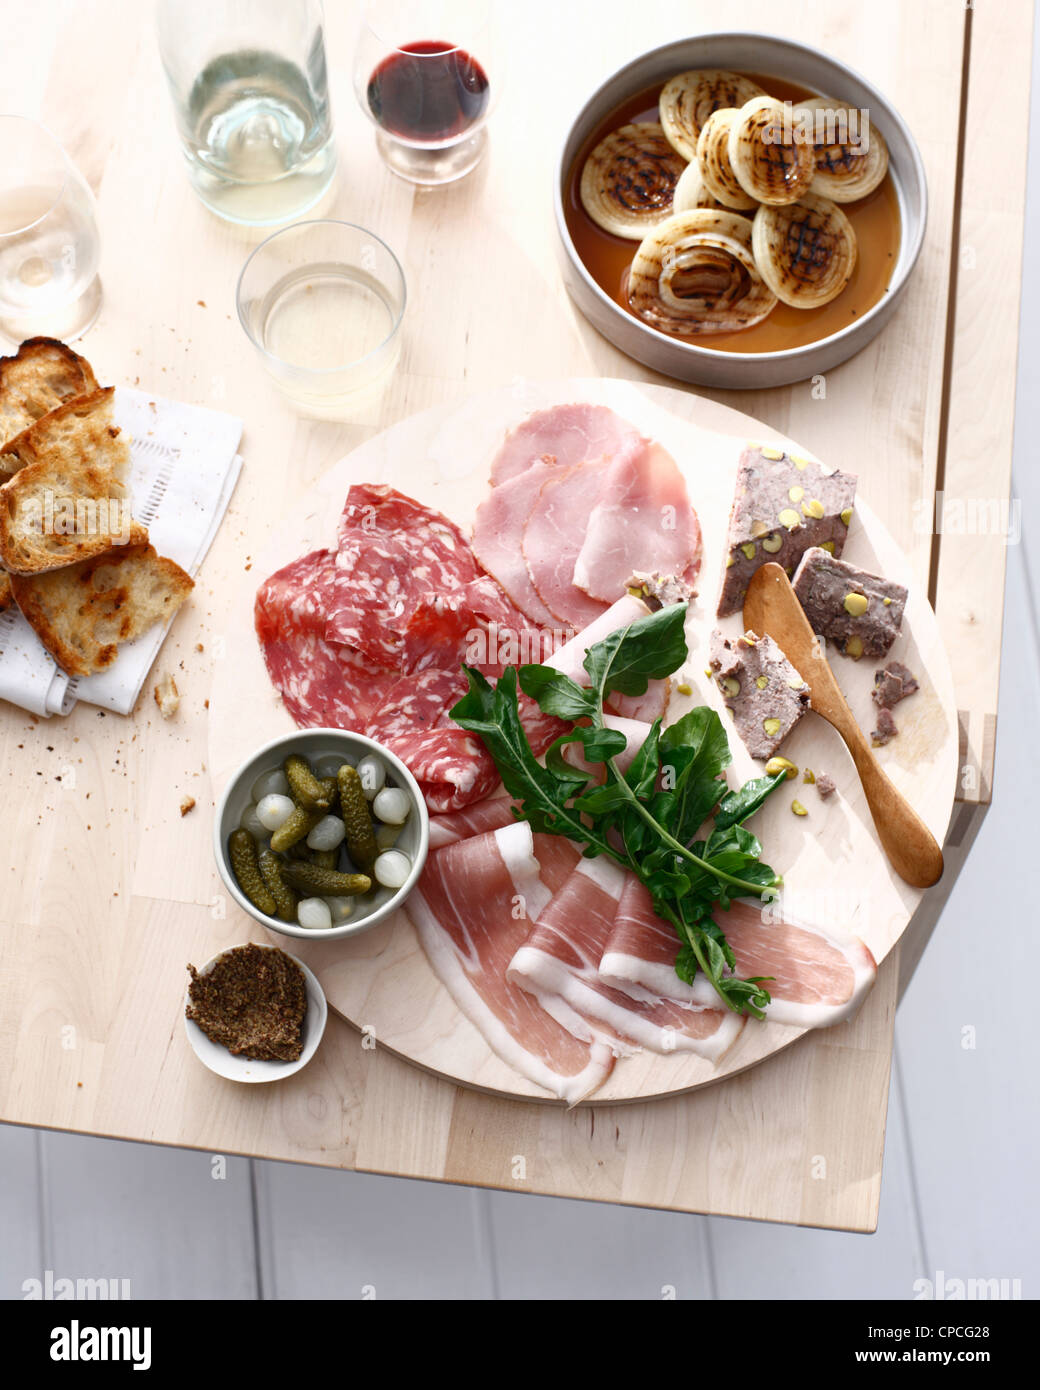 Plate of sliced meats, bread and herbs - Stock Image